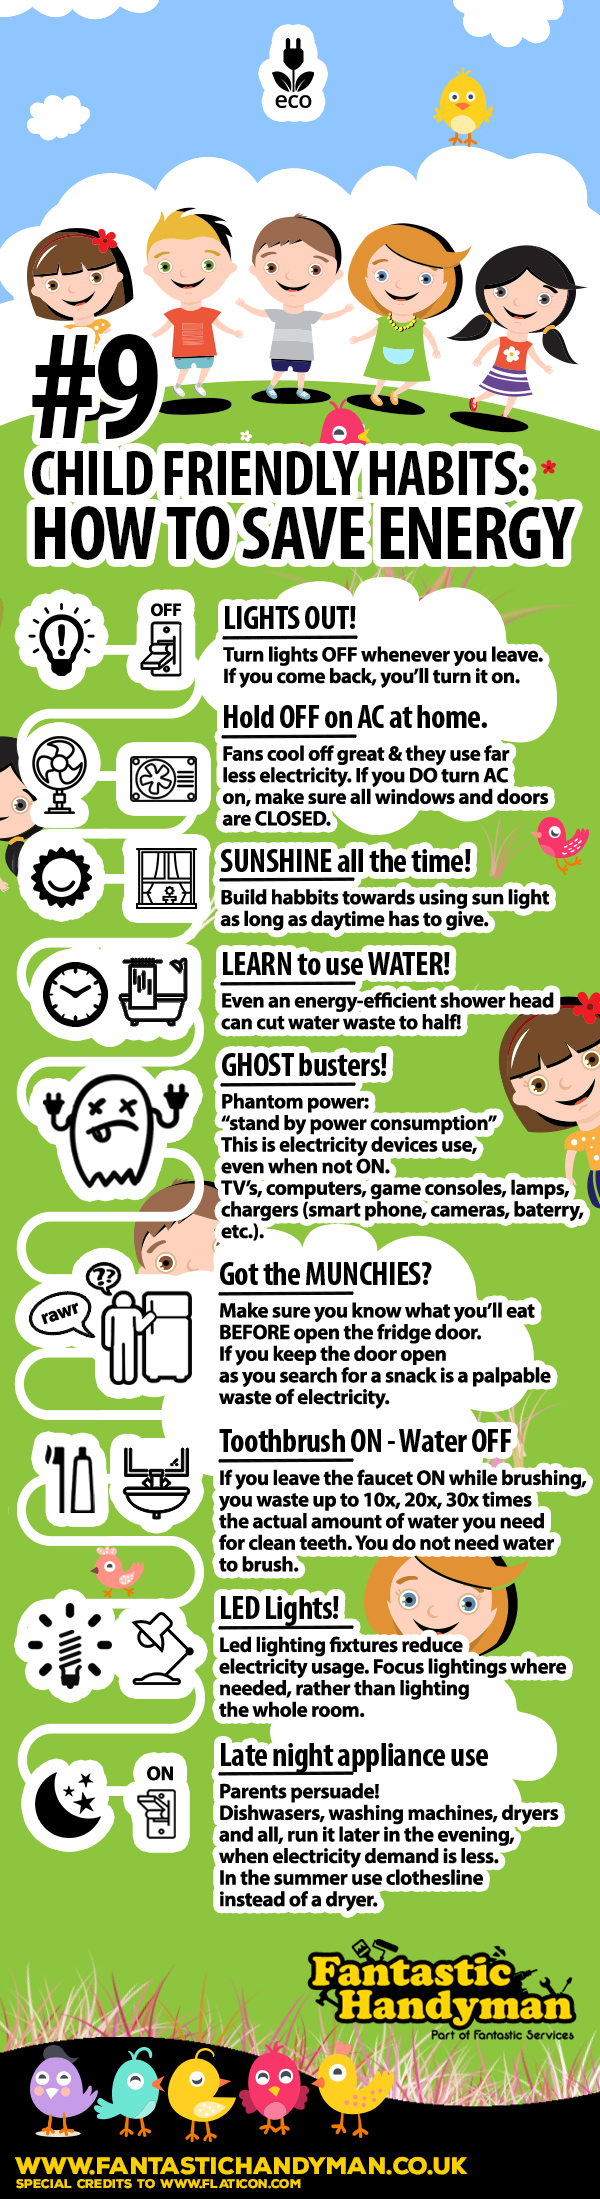 How to Save Energy for Kids #infographic #Safety & Efficiency #kids #infographics #Kids safety #Infographic